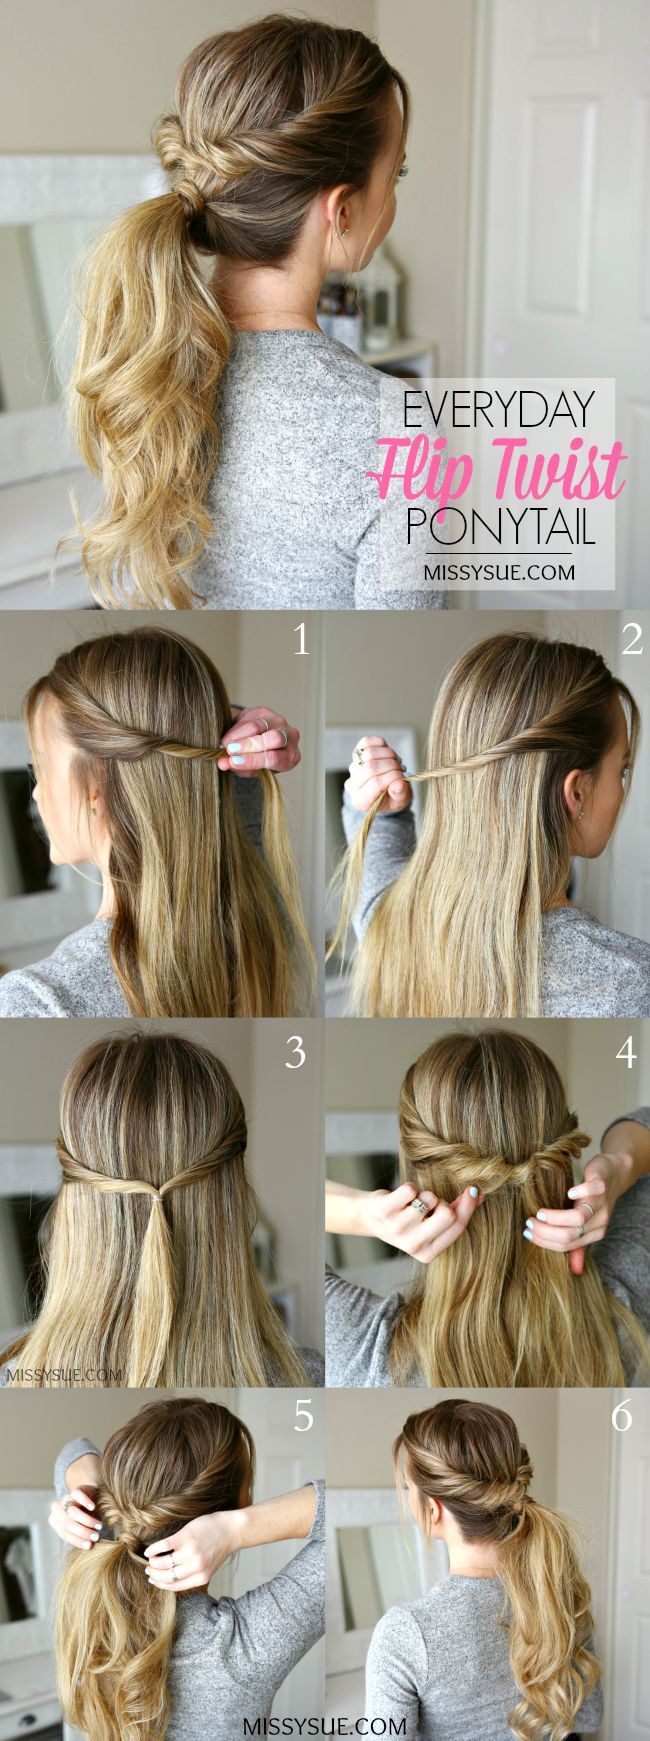 best hairstyles images on pinterest coiffure facile hair ideas